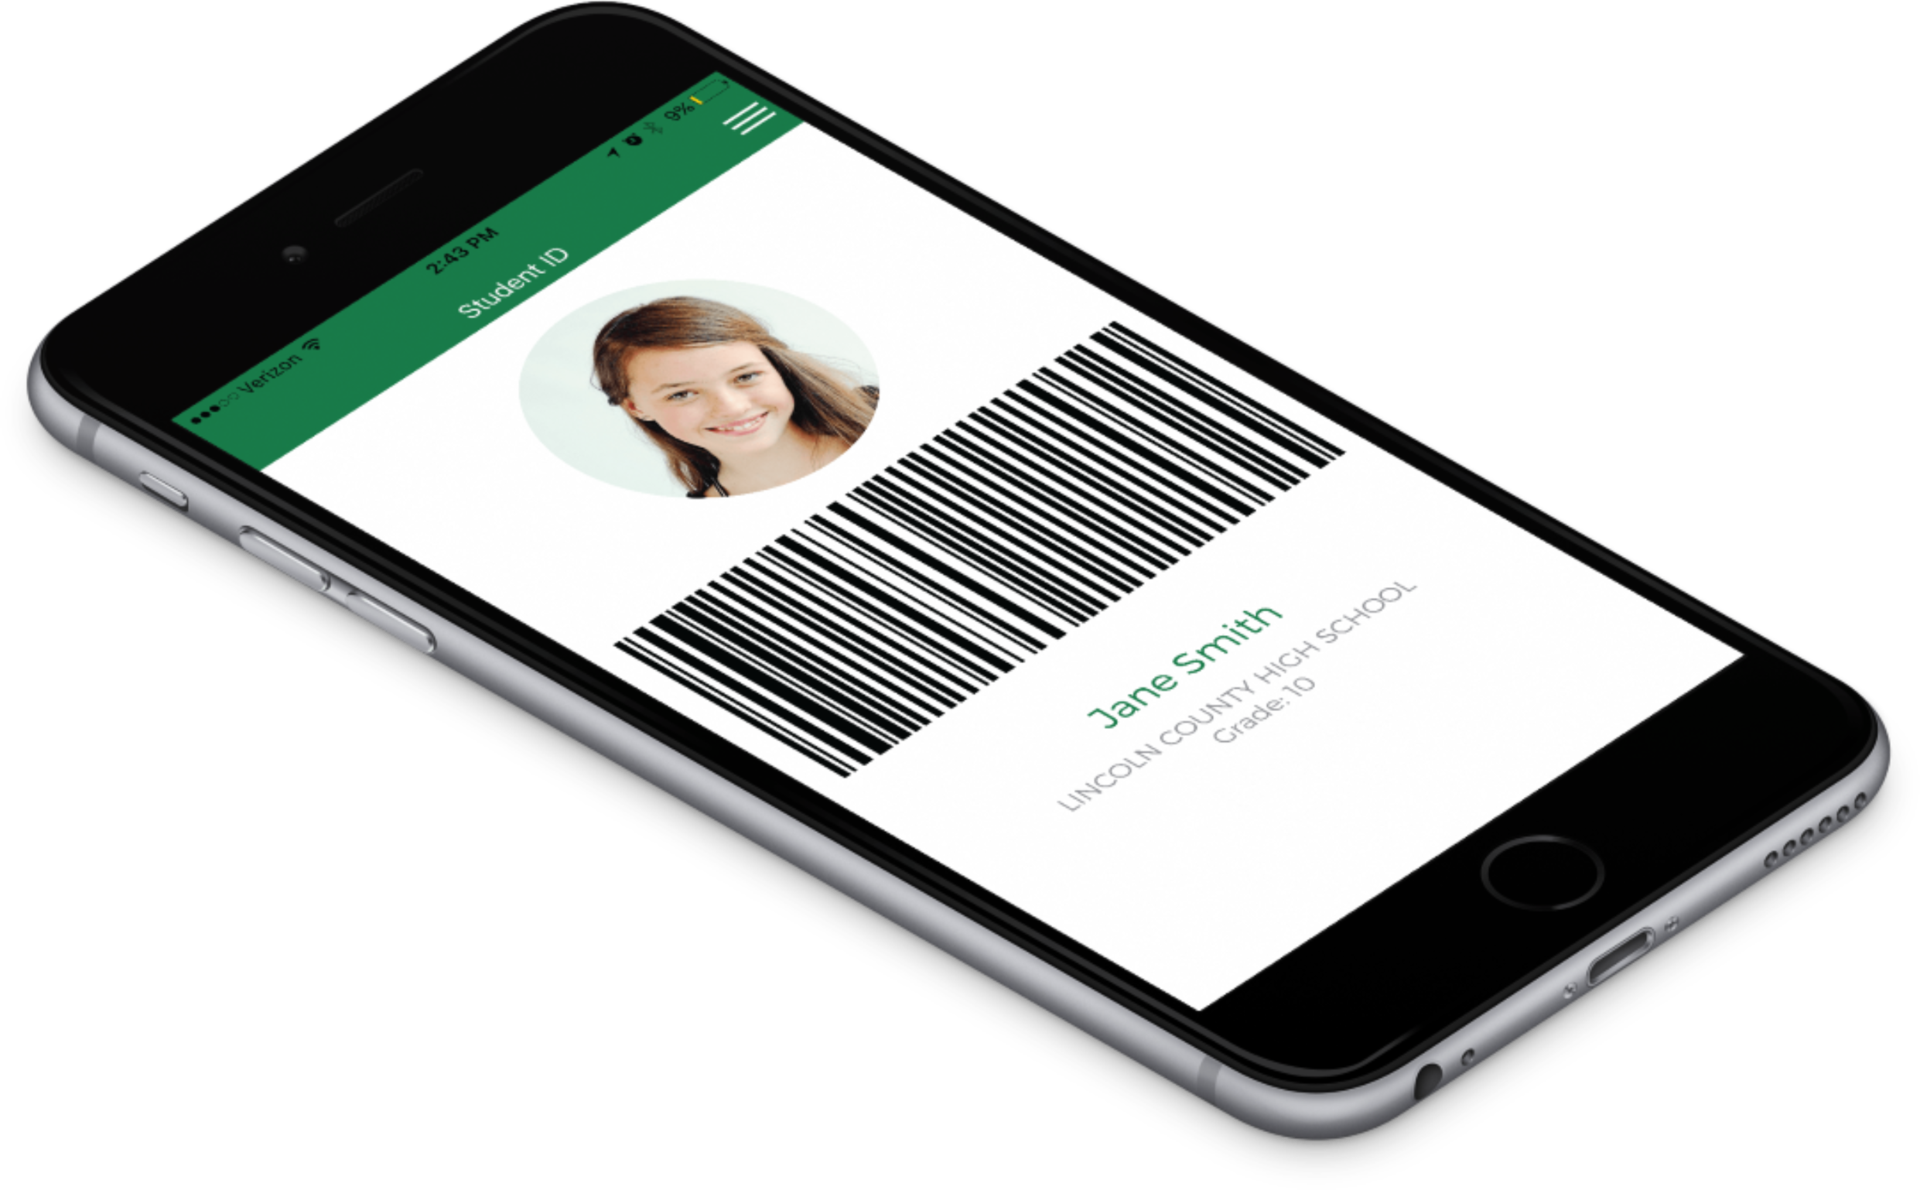 photo of bar code on mobile device